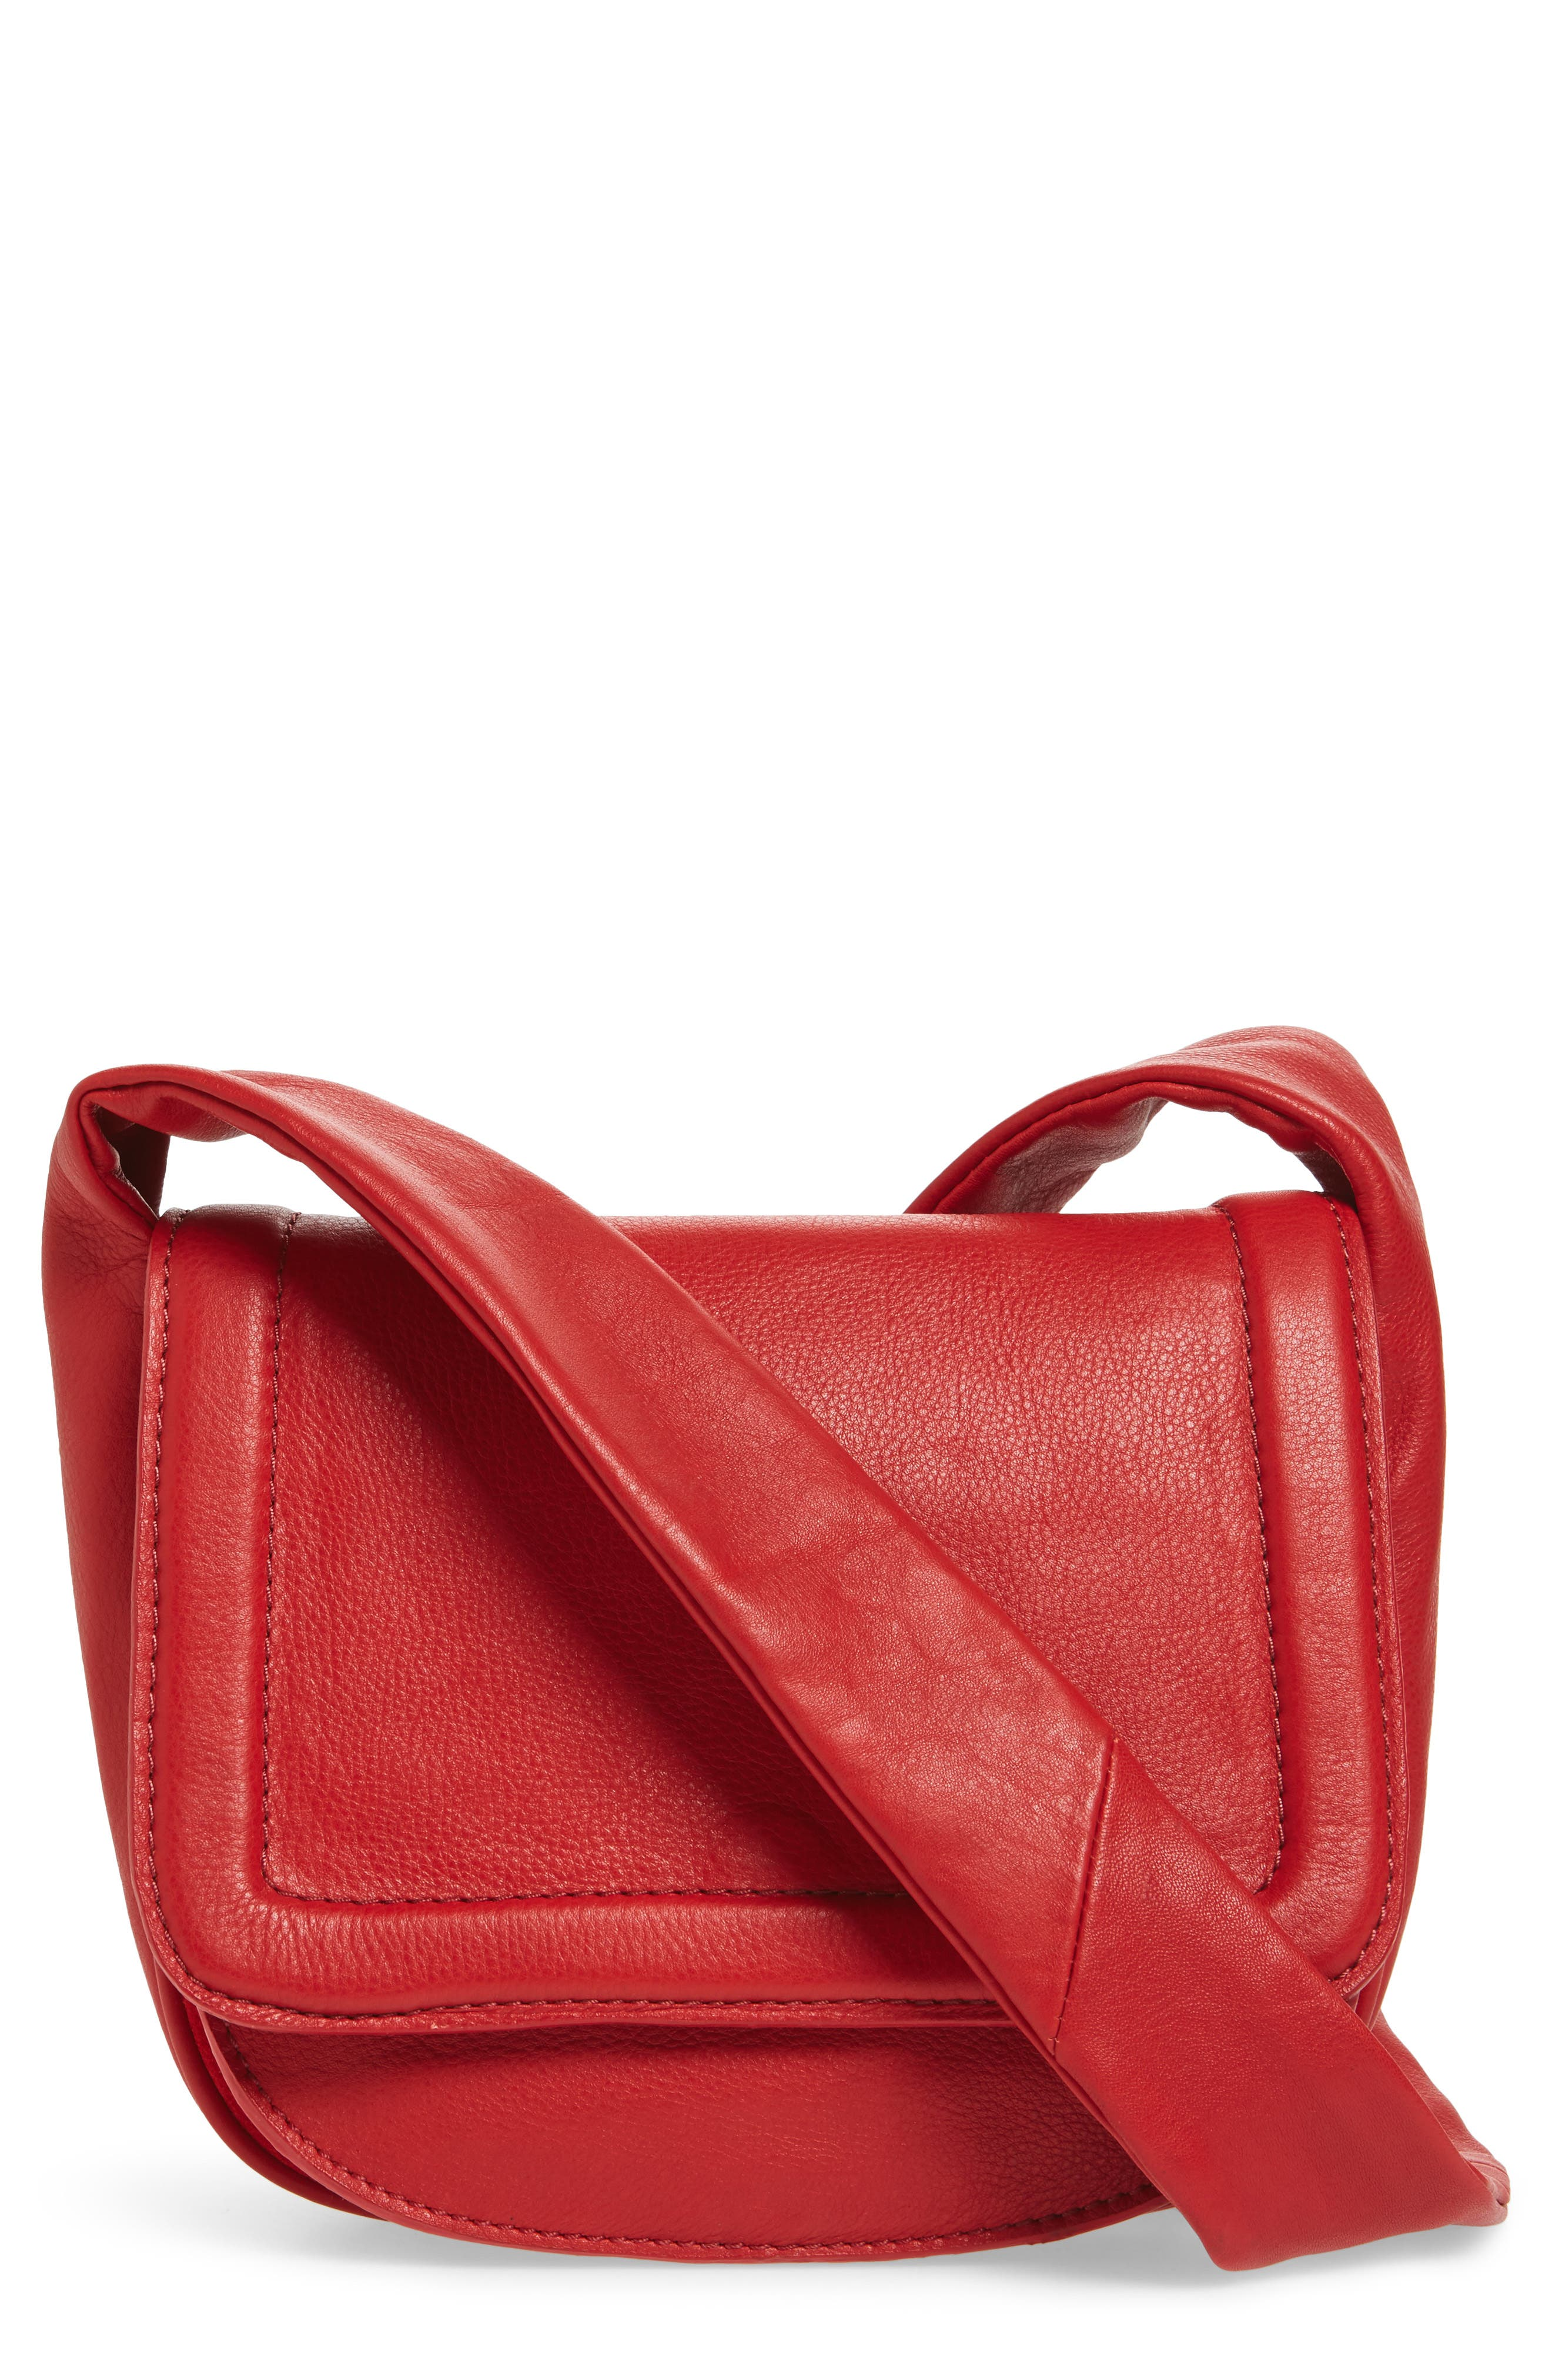 Main Image - Topshop Jasmine Leather Saddle Bag